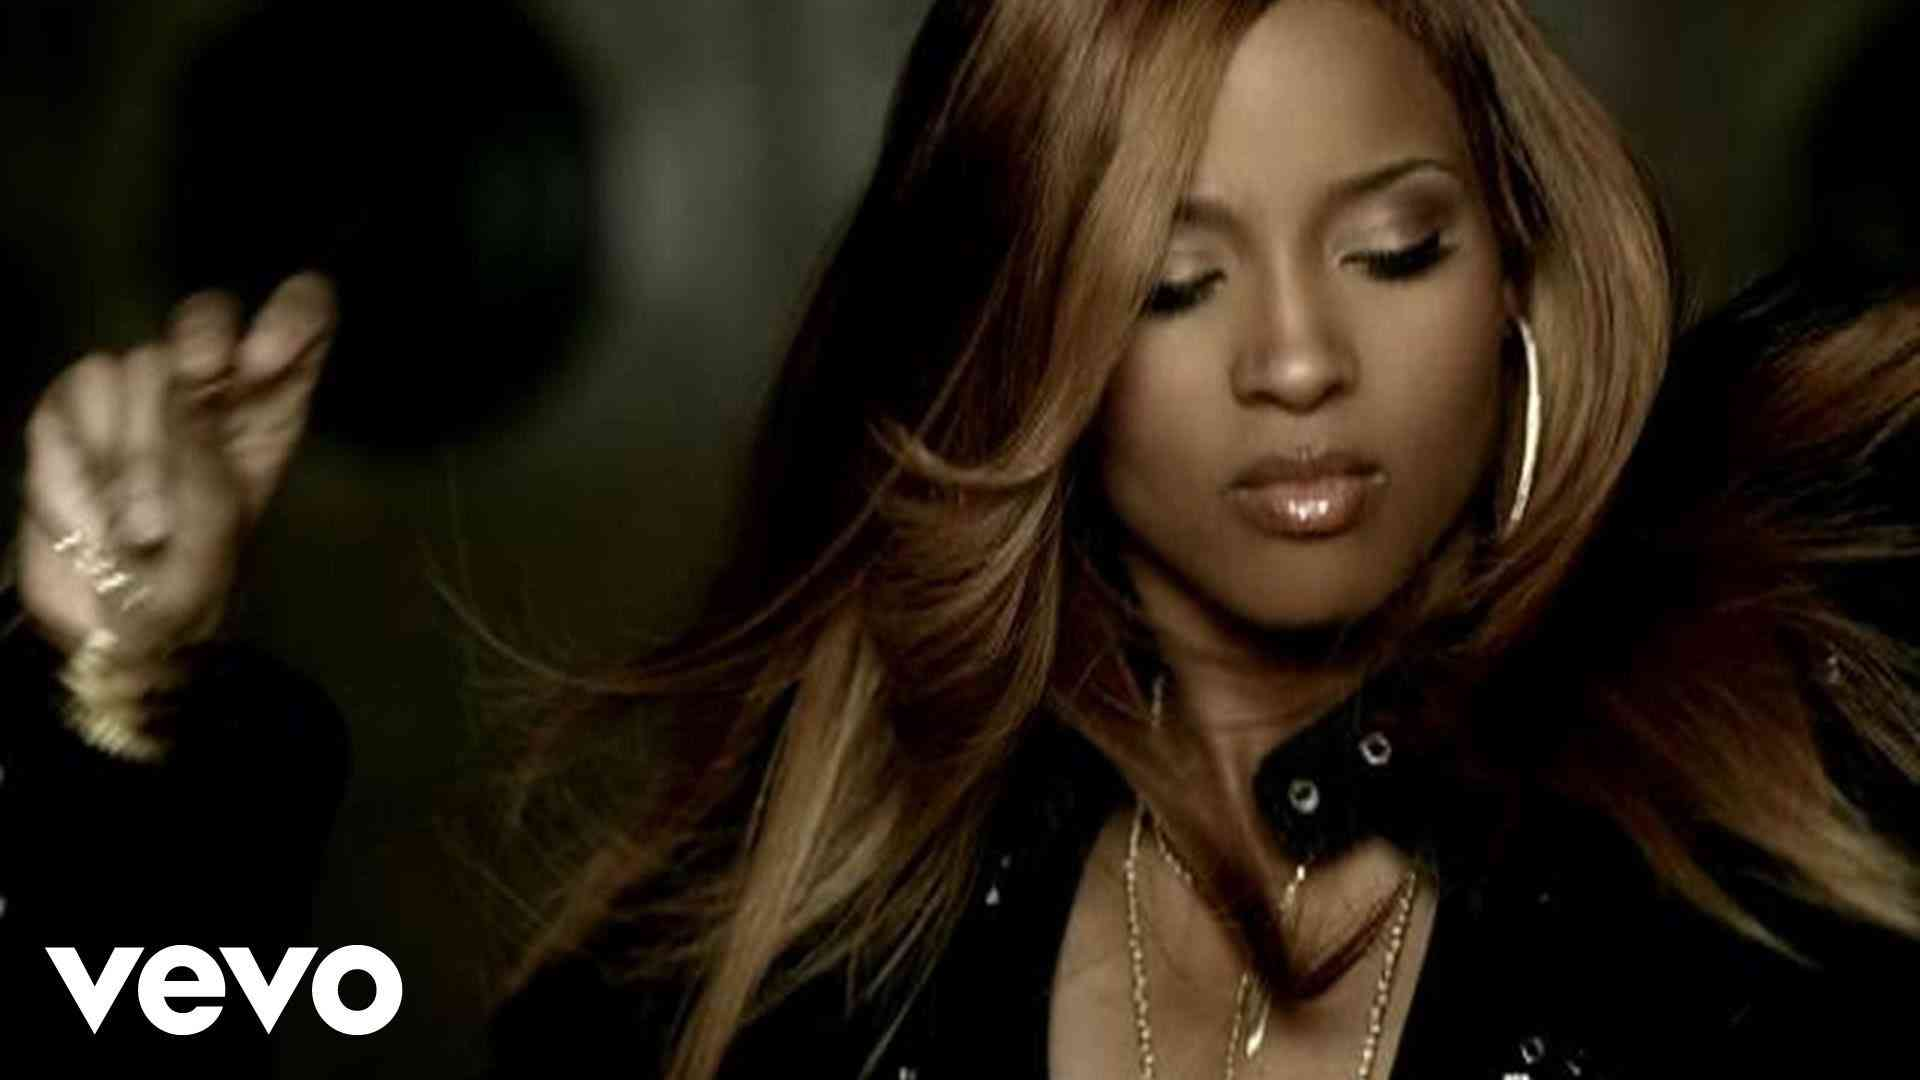 Ciara - 1, 2 Step ft. Missy Elliott - YouTube